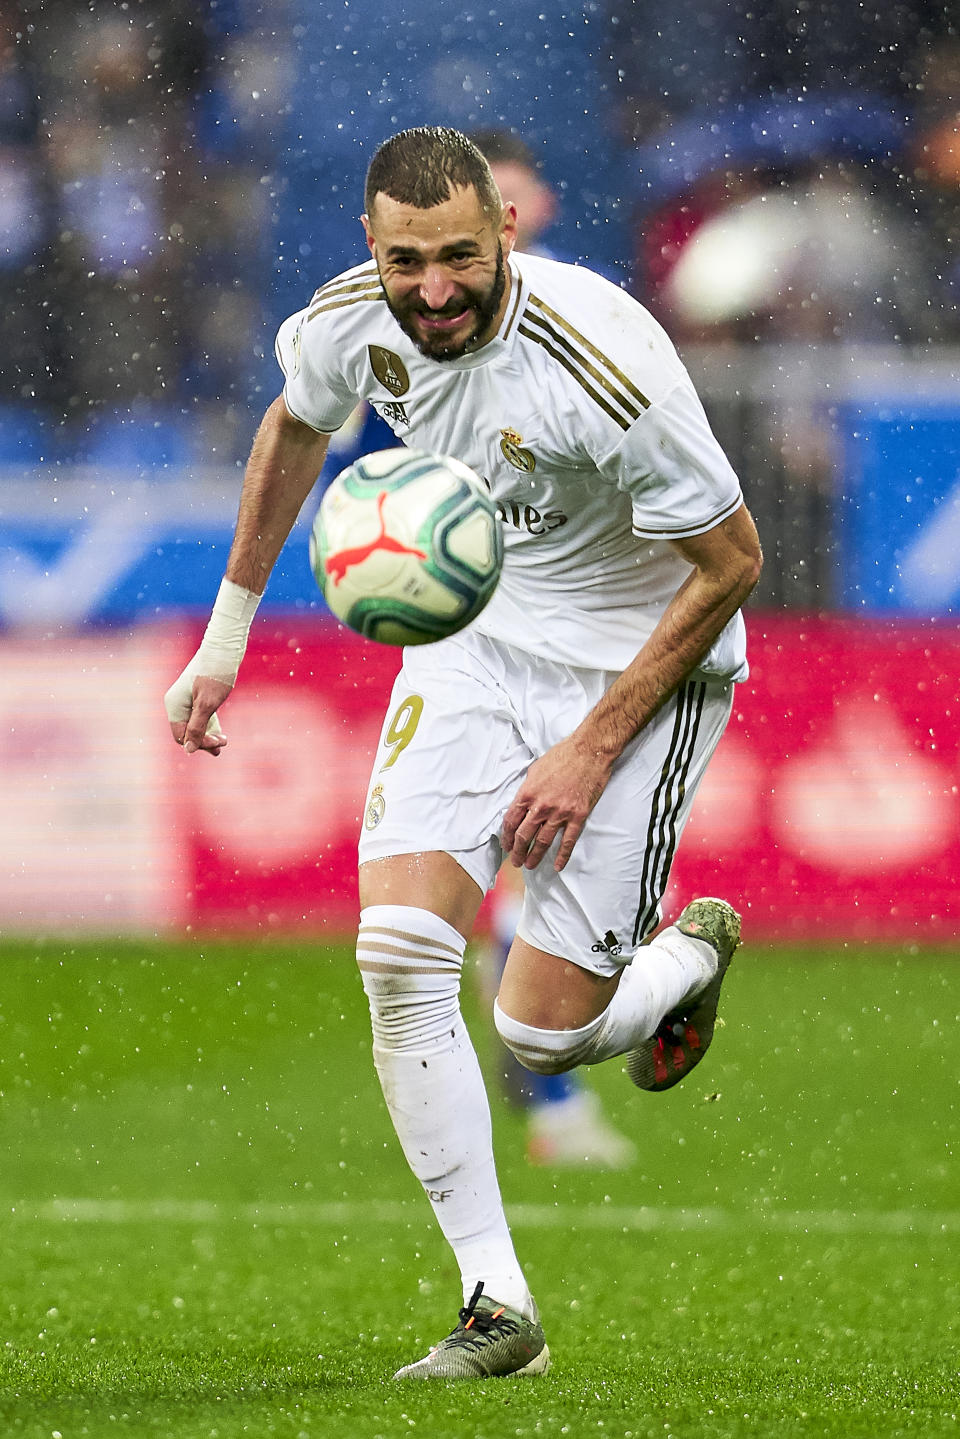 VITORIA-GASTEIZ, SPAIN - NOVEMBER 30: Karim Benzema of Real Madrid CF with the ball during the Liga match between Deportivo Alaves and Real Madrid CF at Estadio de Mendizorroza on November 30, 2019 in Vitoria-Gasteiz, Spain. (Photo by Quality Sport Images/Getty Images)